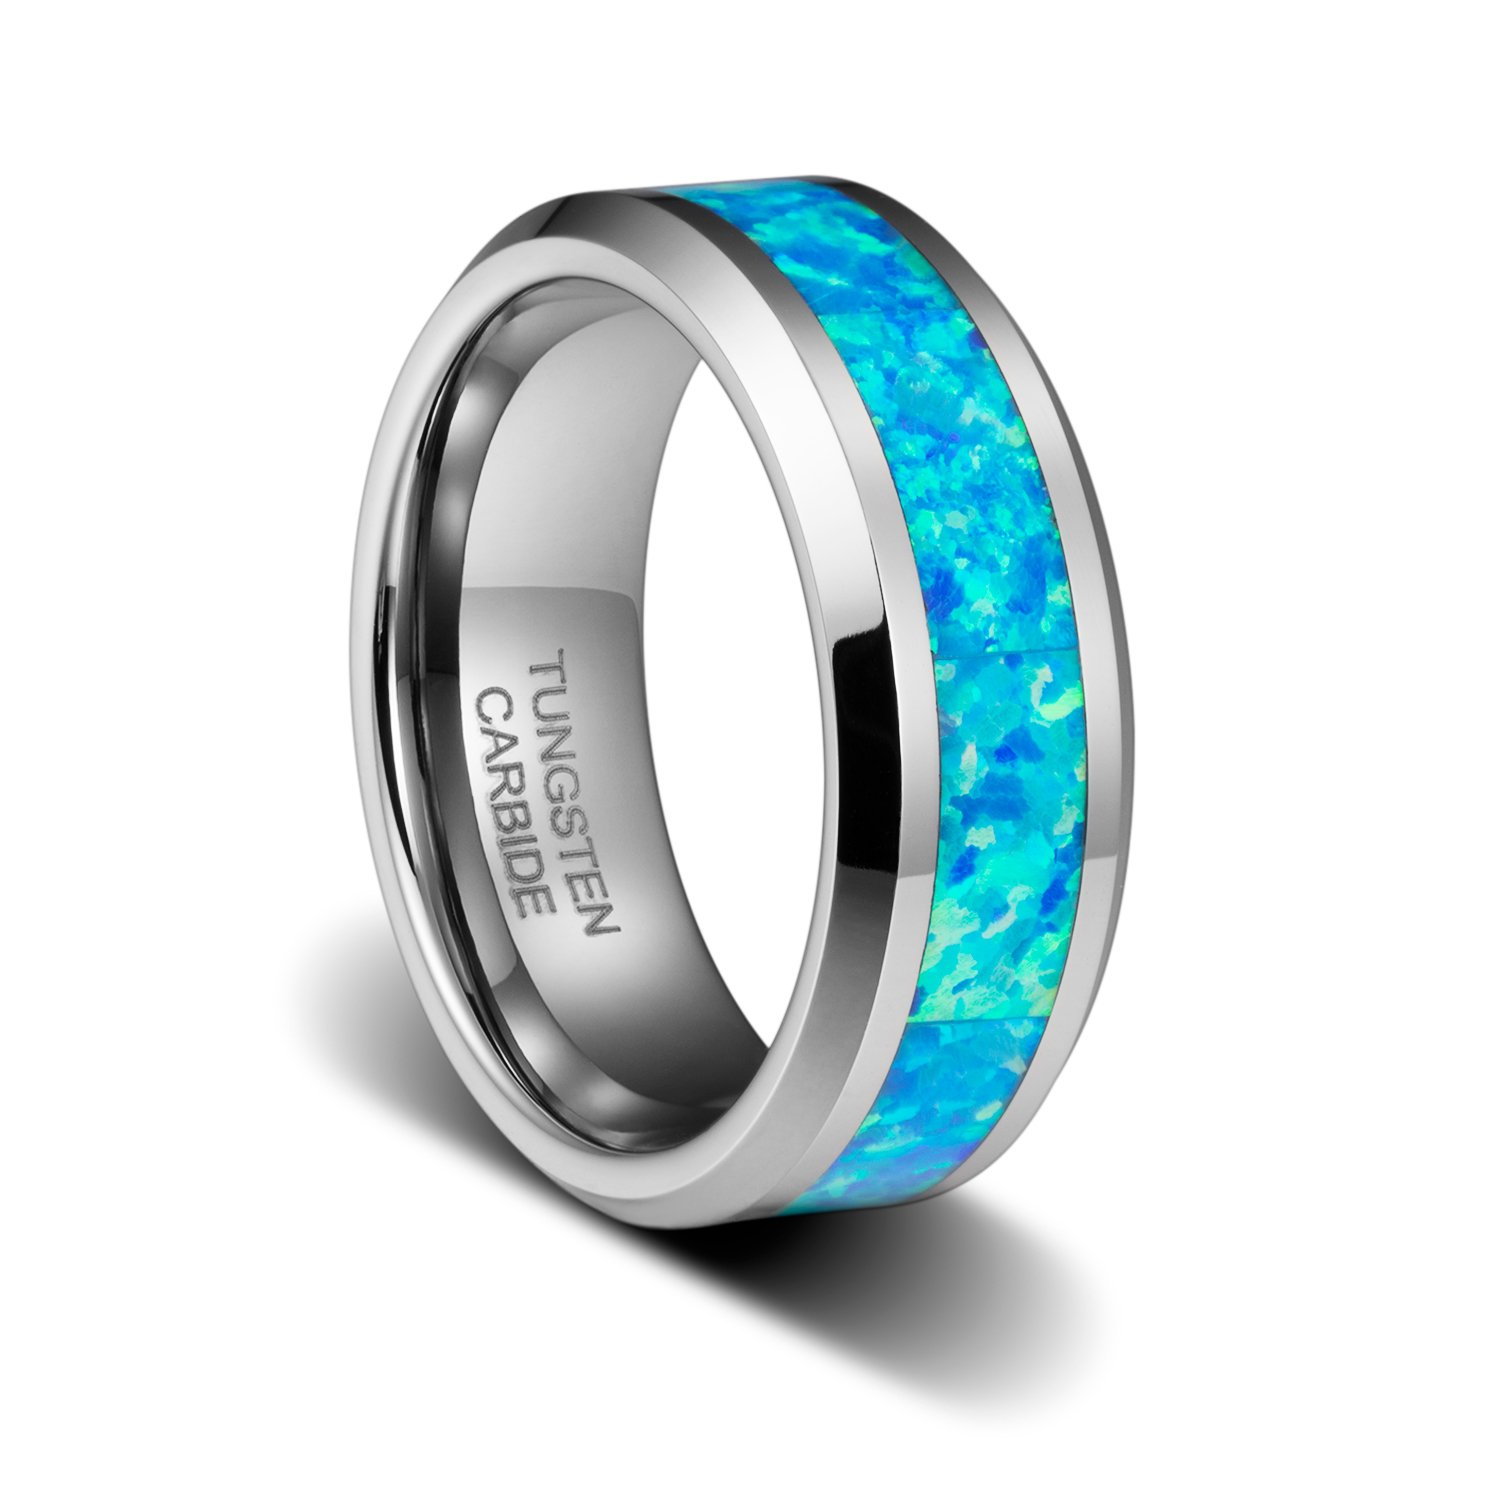 TUSEN JEWELRY 8mm Mens Rings Tungsten Wedding Promise Rings Birthstone Polished with Blue Opal Inlay Size:11